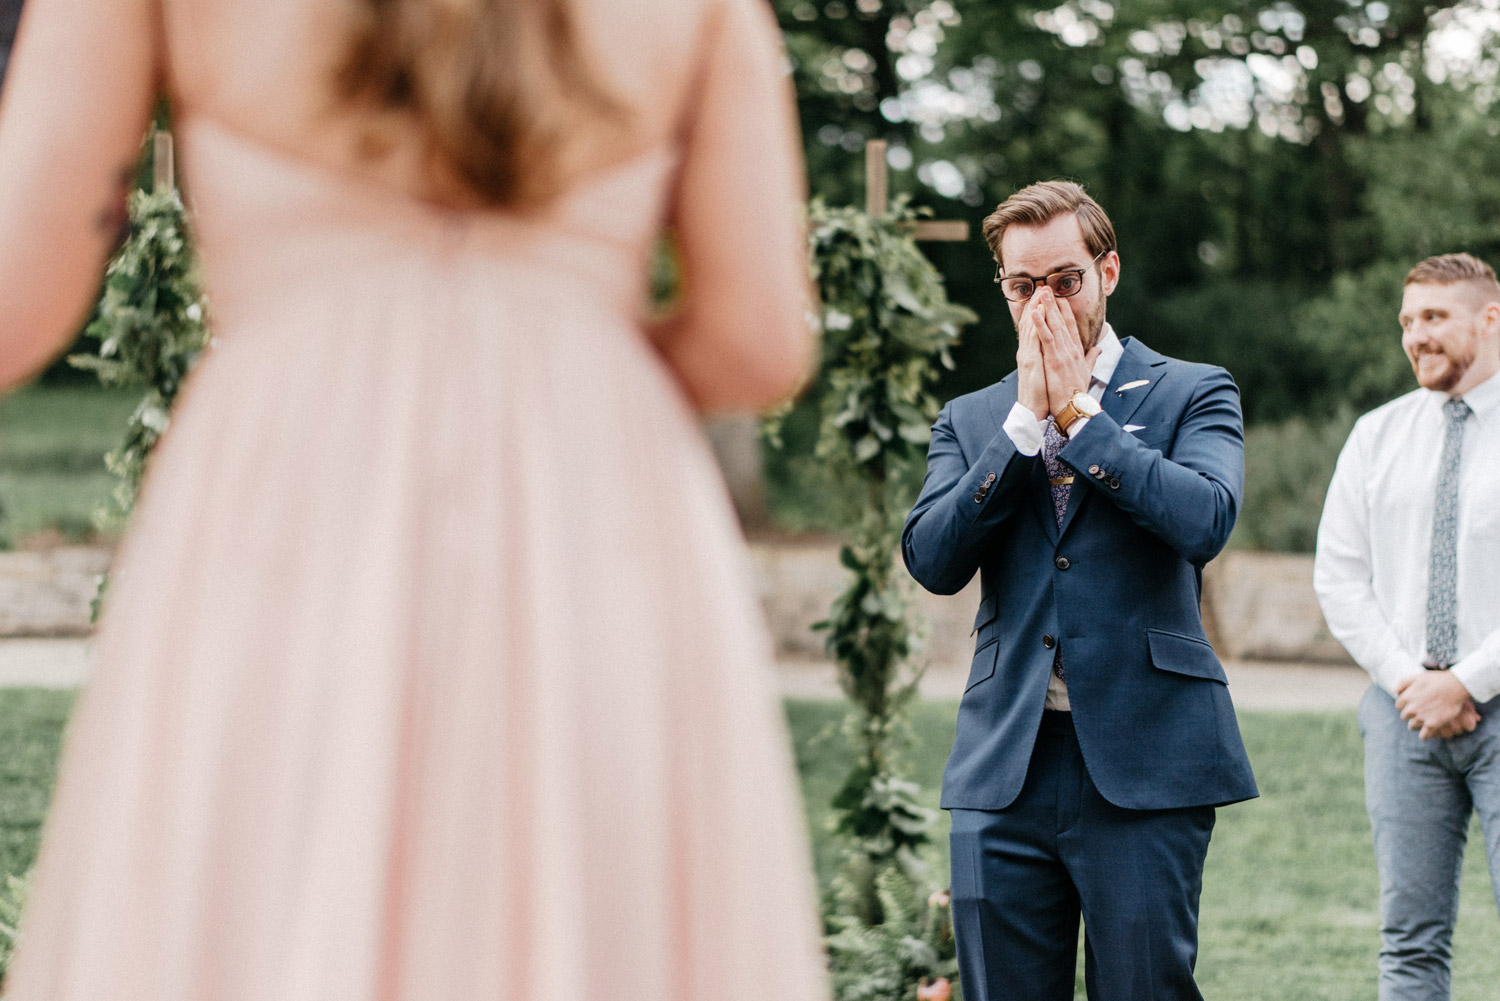 Emotional Groom seeing Bride walk down the aisle by geneoh photography